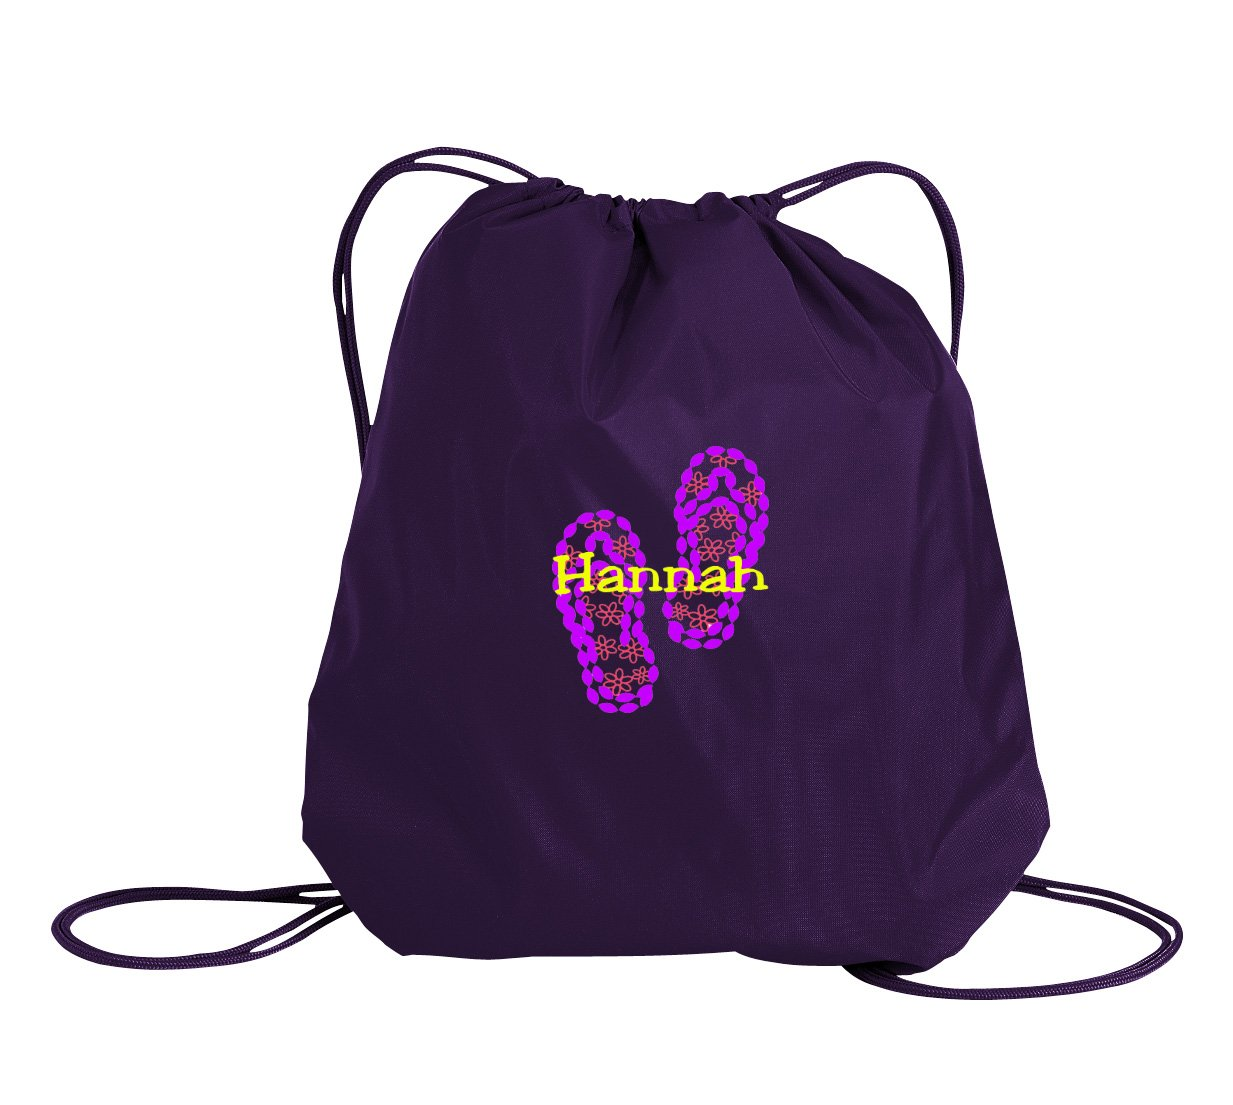 all about me company Flip Flop Personalized - Drawstring Sack Cinch Backpack (Purple)